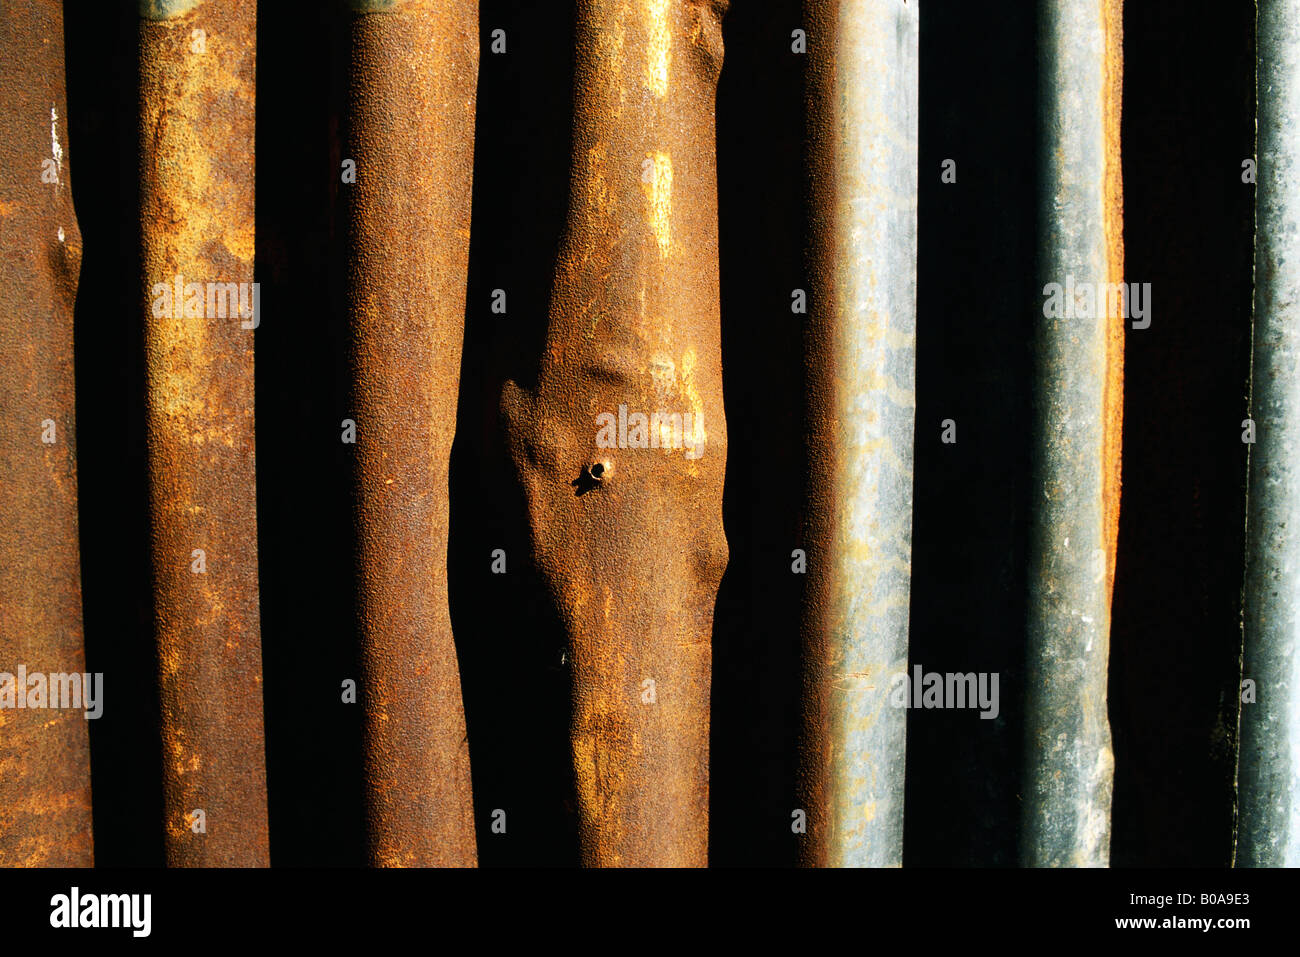 Metal bars with rust, close-up - Stock Image